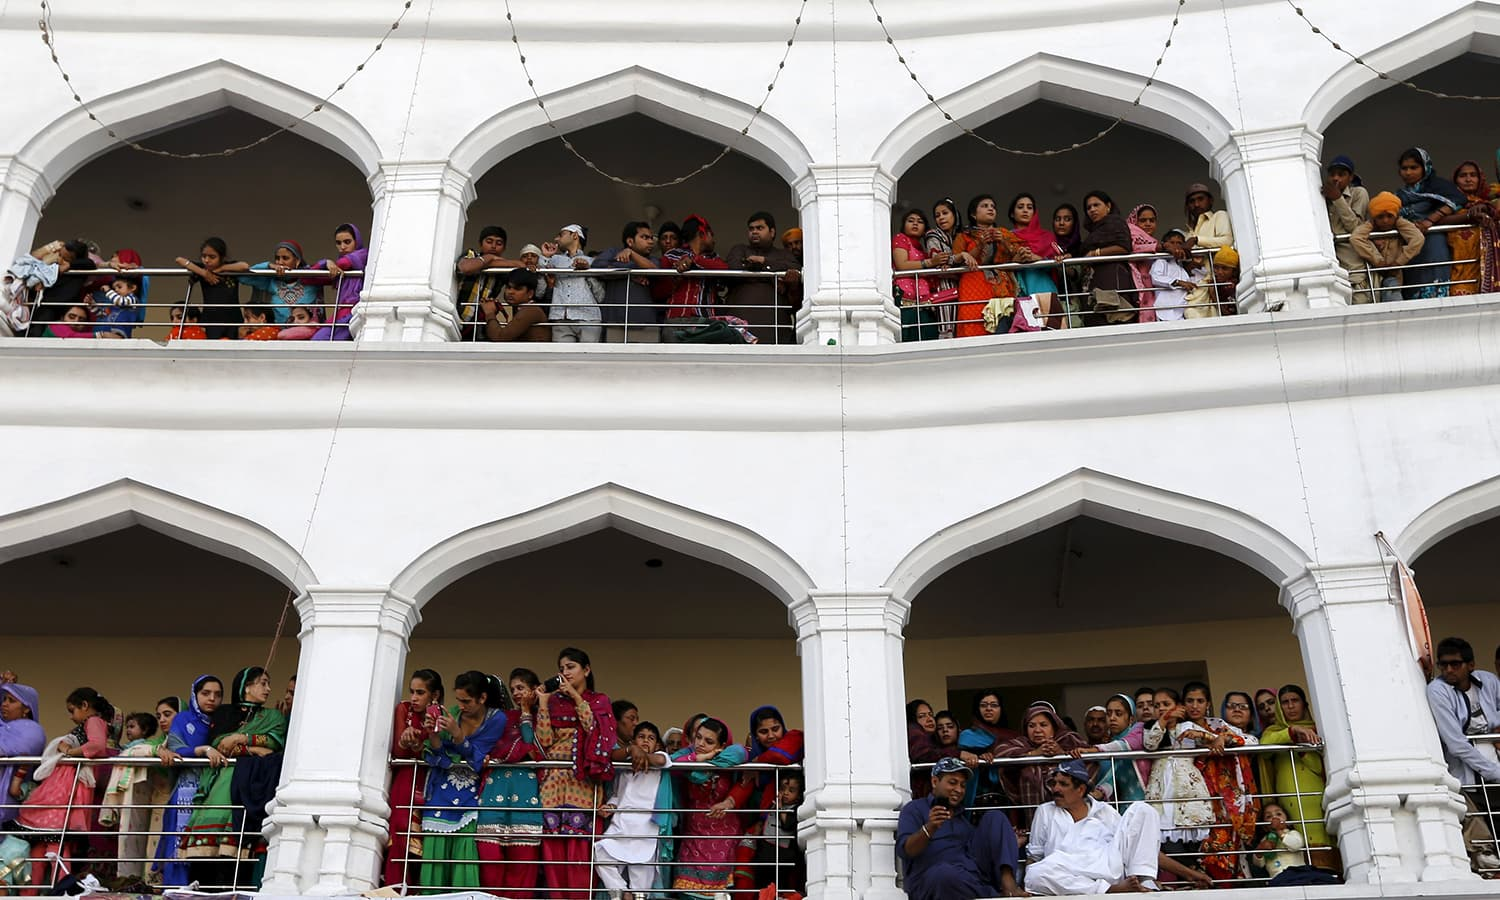 Sikh devotees watch the Baisakhi festival at Panja Sahib shrine. — Reuters